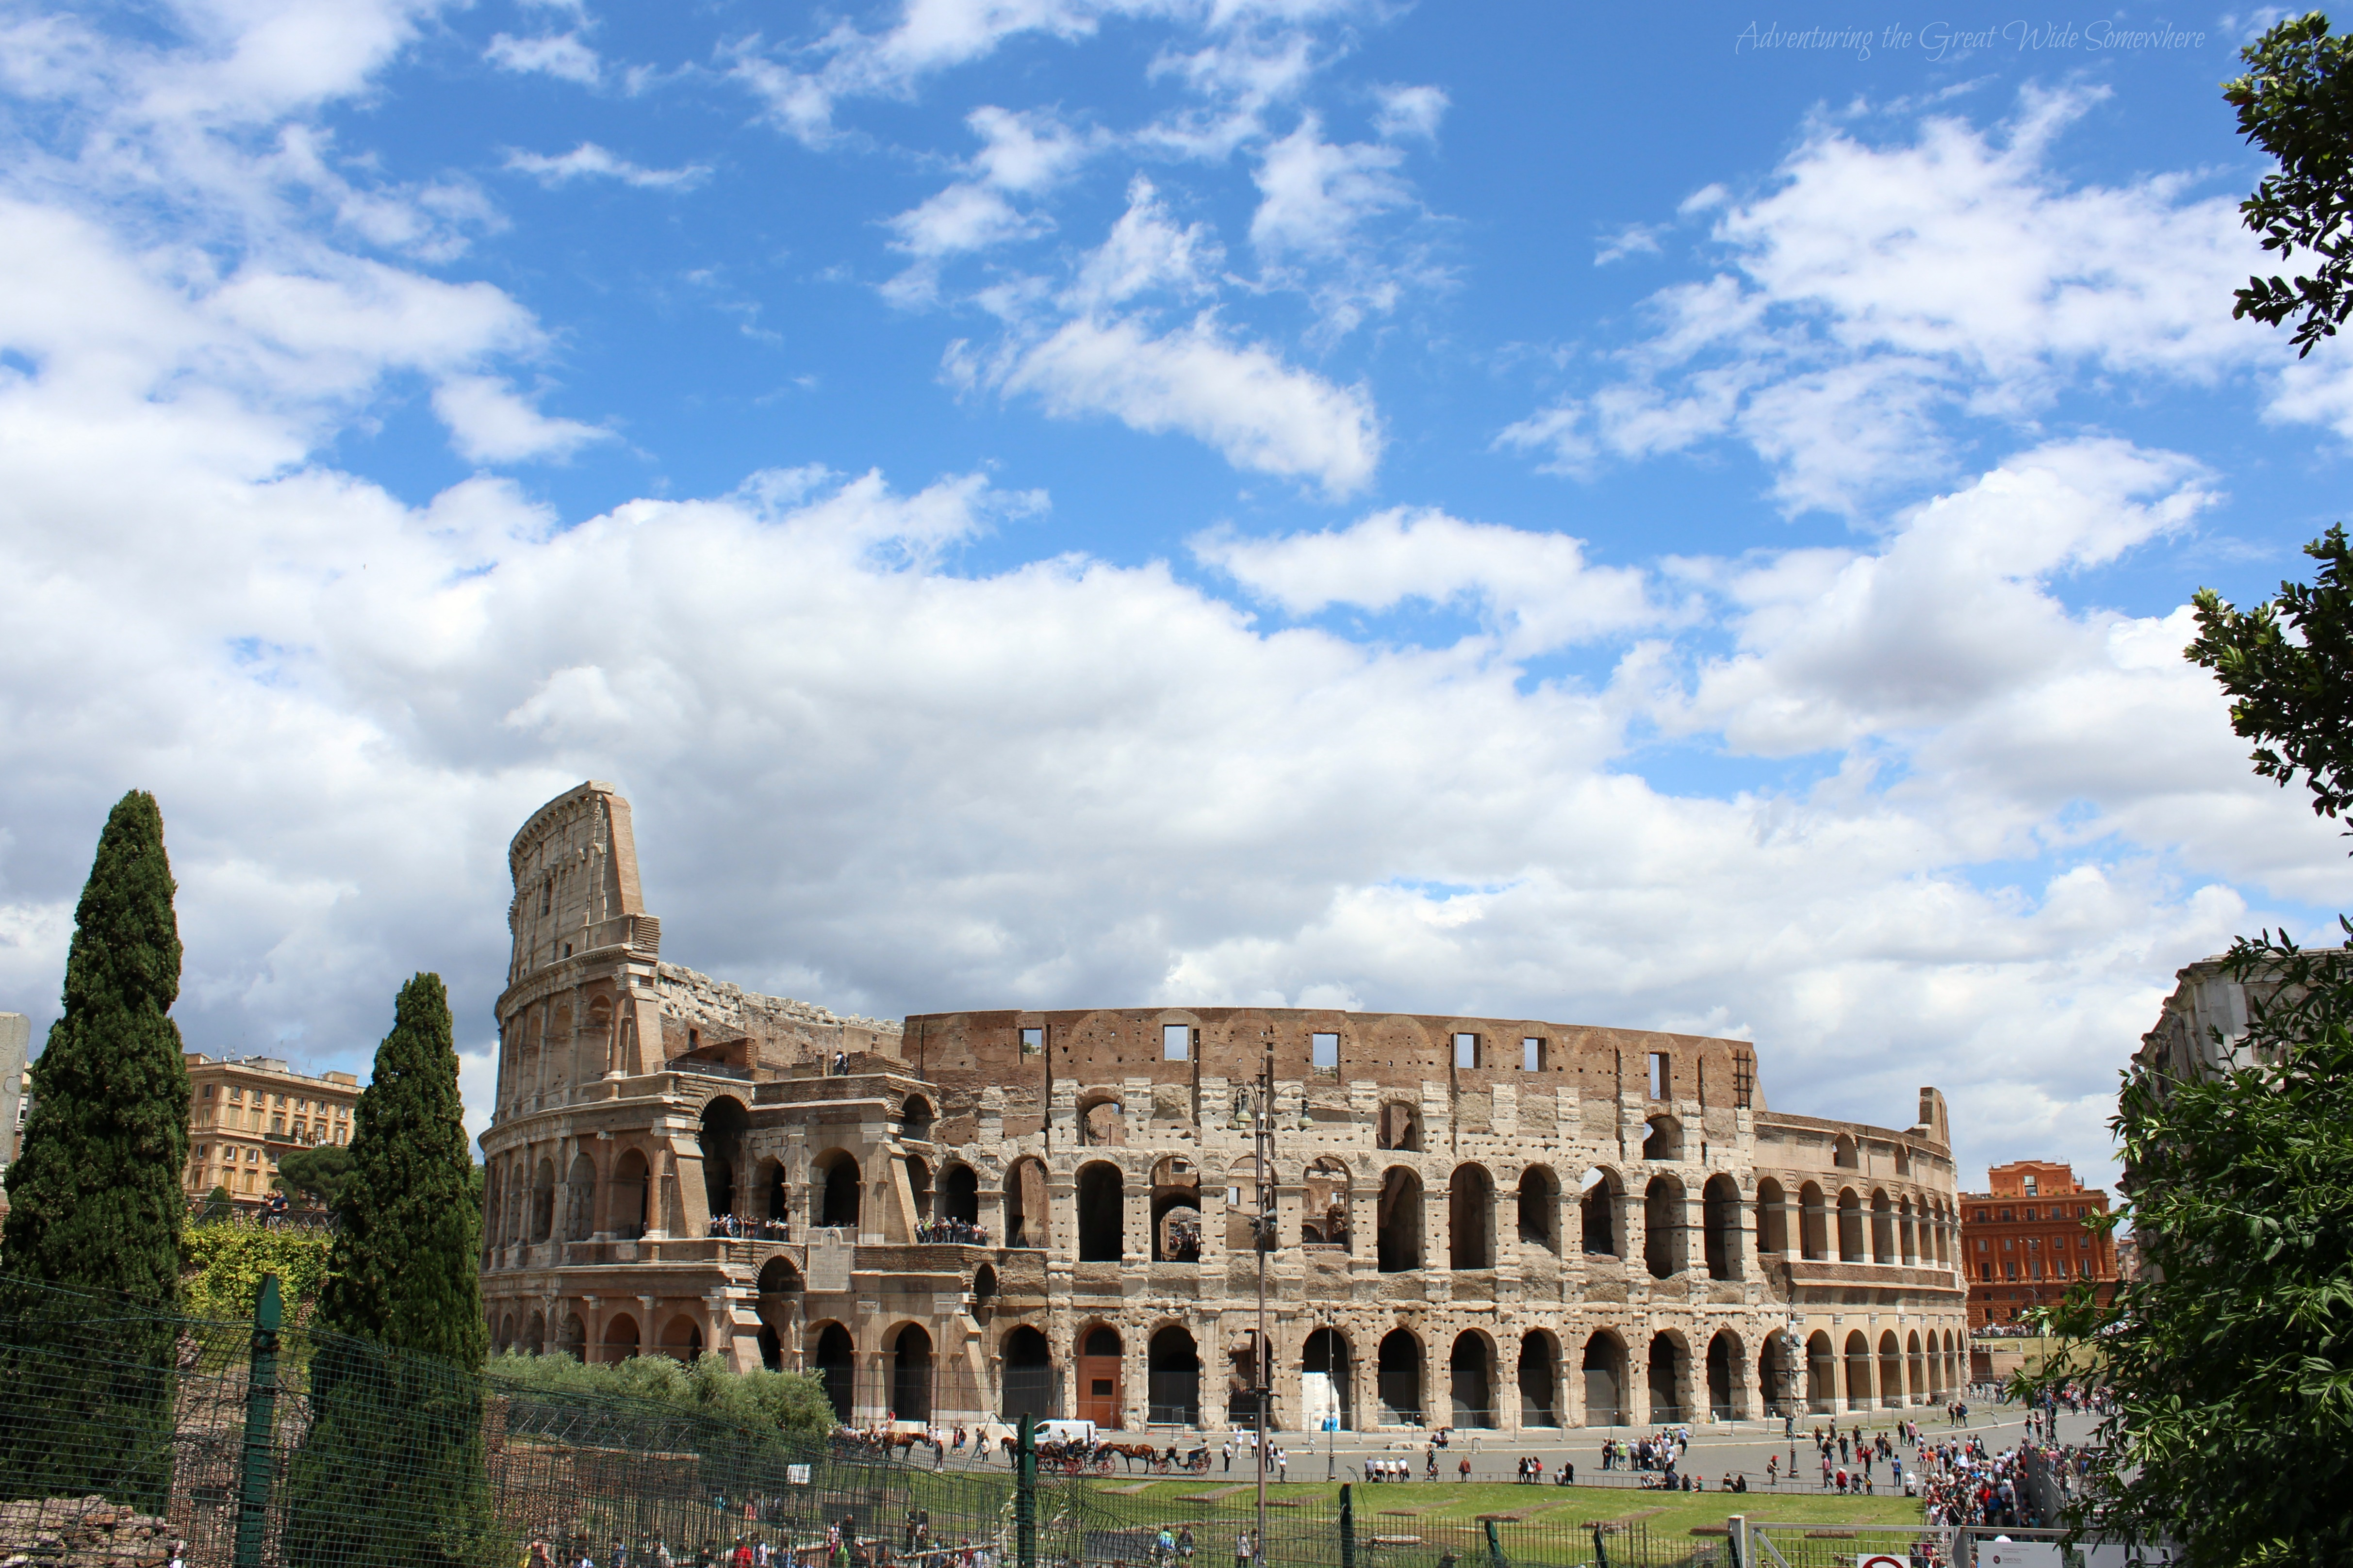 Strolling Around the Colosseum